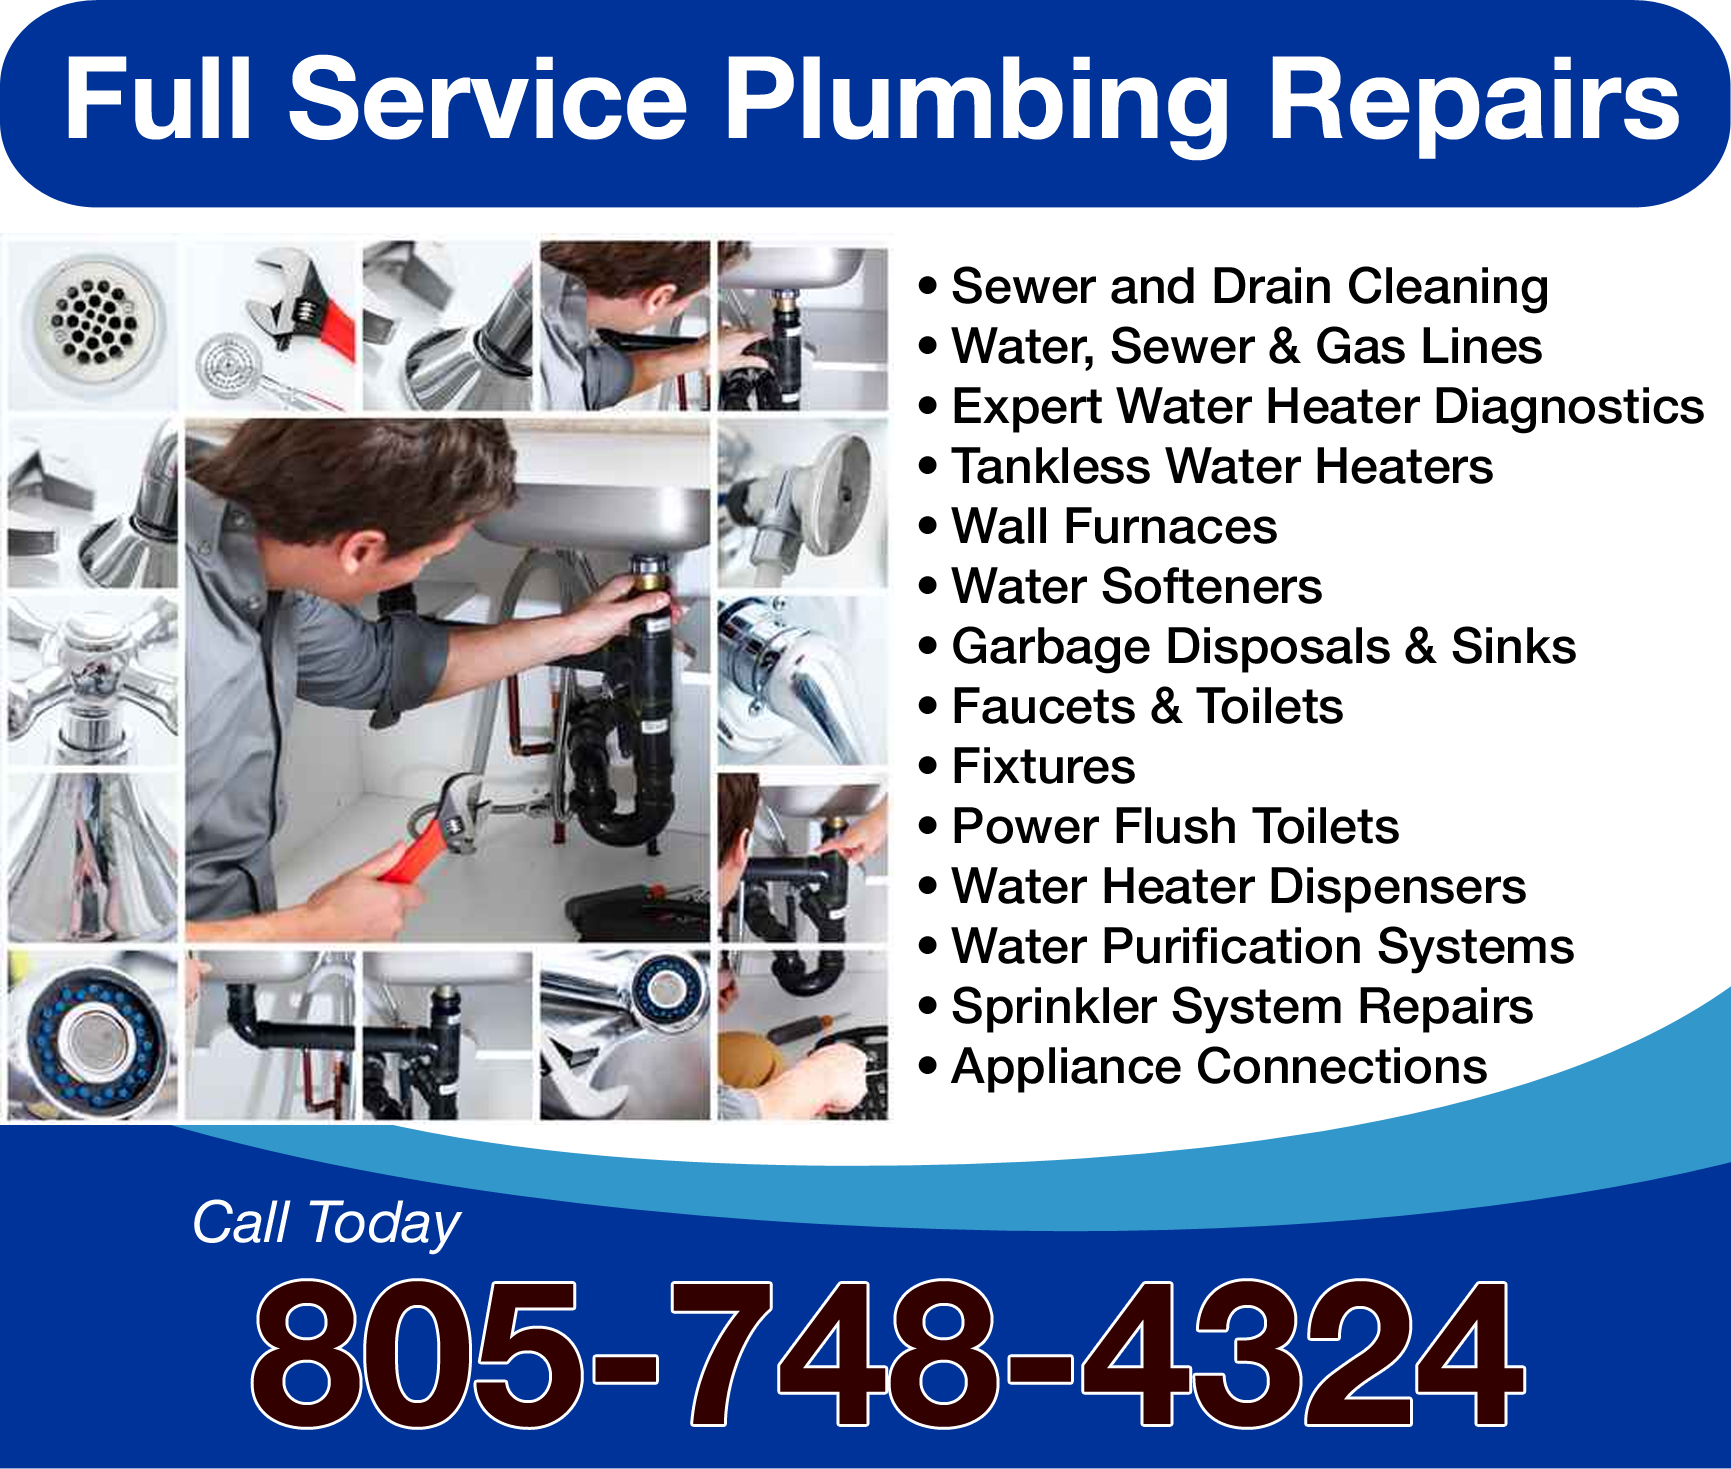 Sewer and Drain Cleaning, Water, Sewer, Gas Lines, Expert Water Heater Diagnostics, Tankless Water Heaters, Wall Furnaces, Water Softeners, Garbage Disposals, Sinks, Faucets, Toilets, Fixtures, Power Flush Toilets, Water Heater Dispensers, Water Purification Systems, Sprinkler System Repairs, Appliance Connections